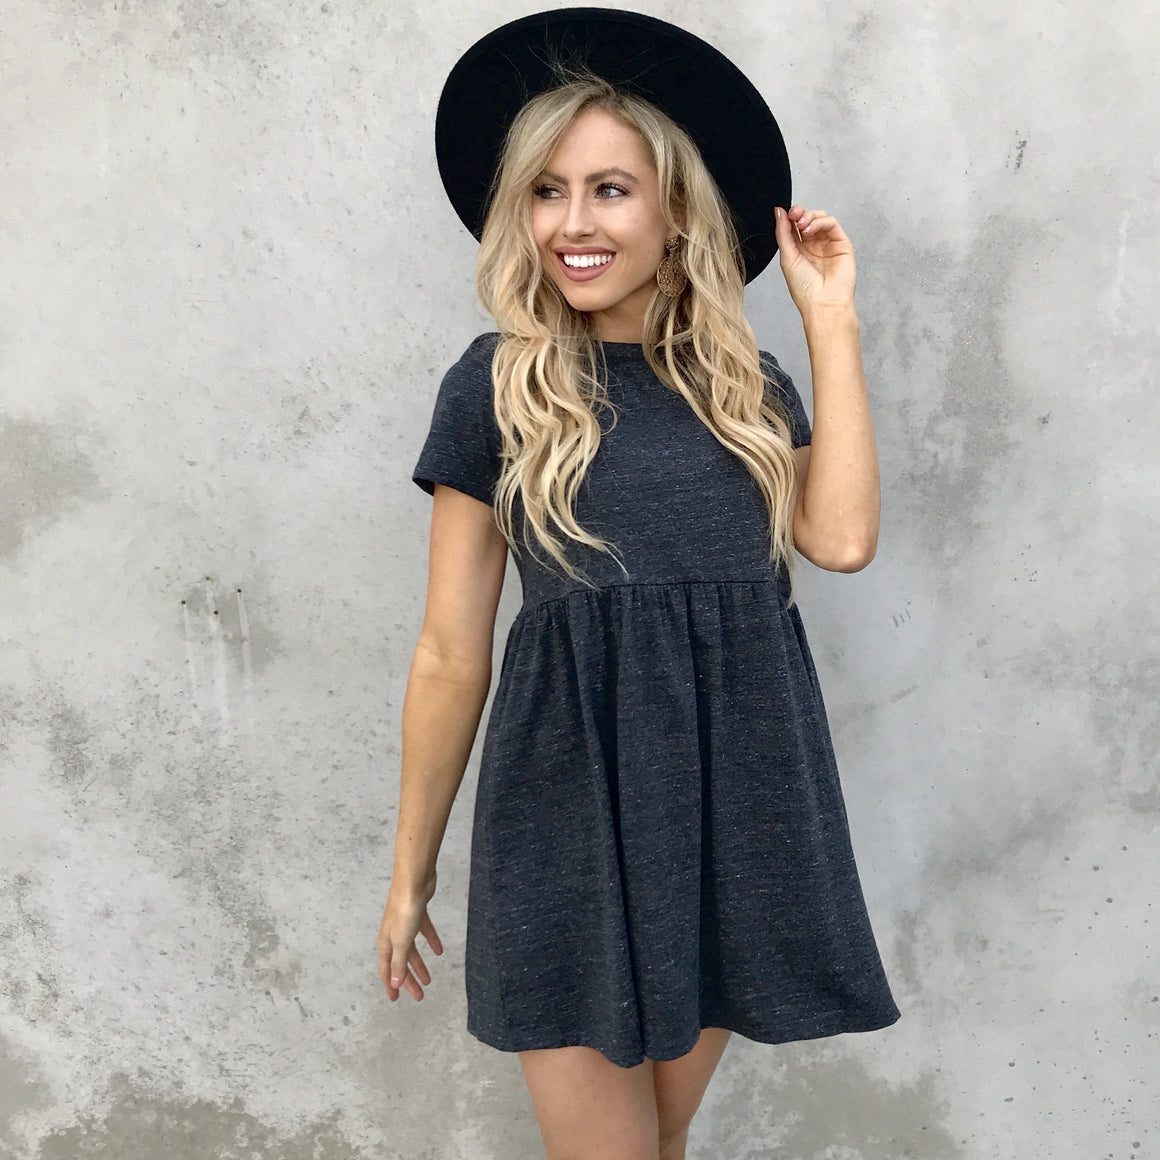 Carry On Babydoll Dress in Black - Dainty Hooligan